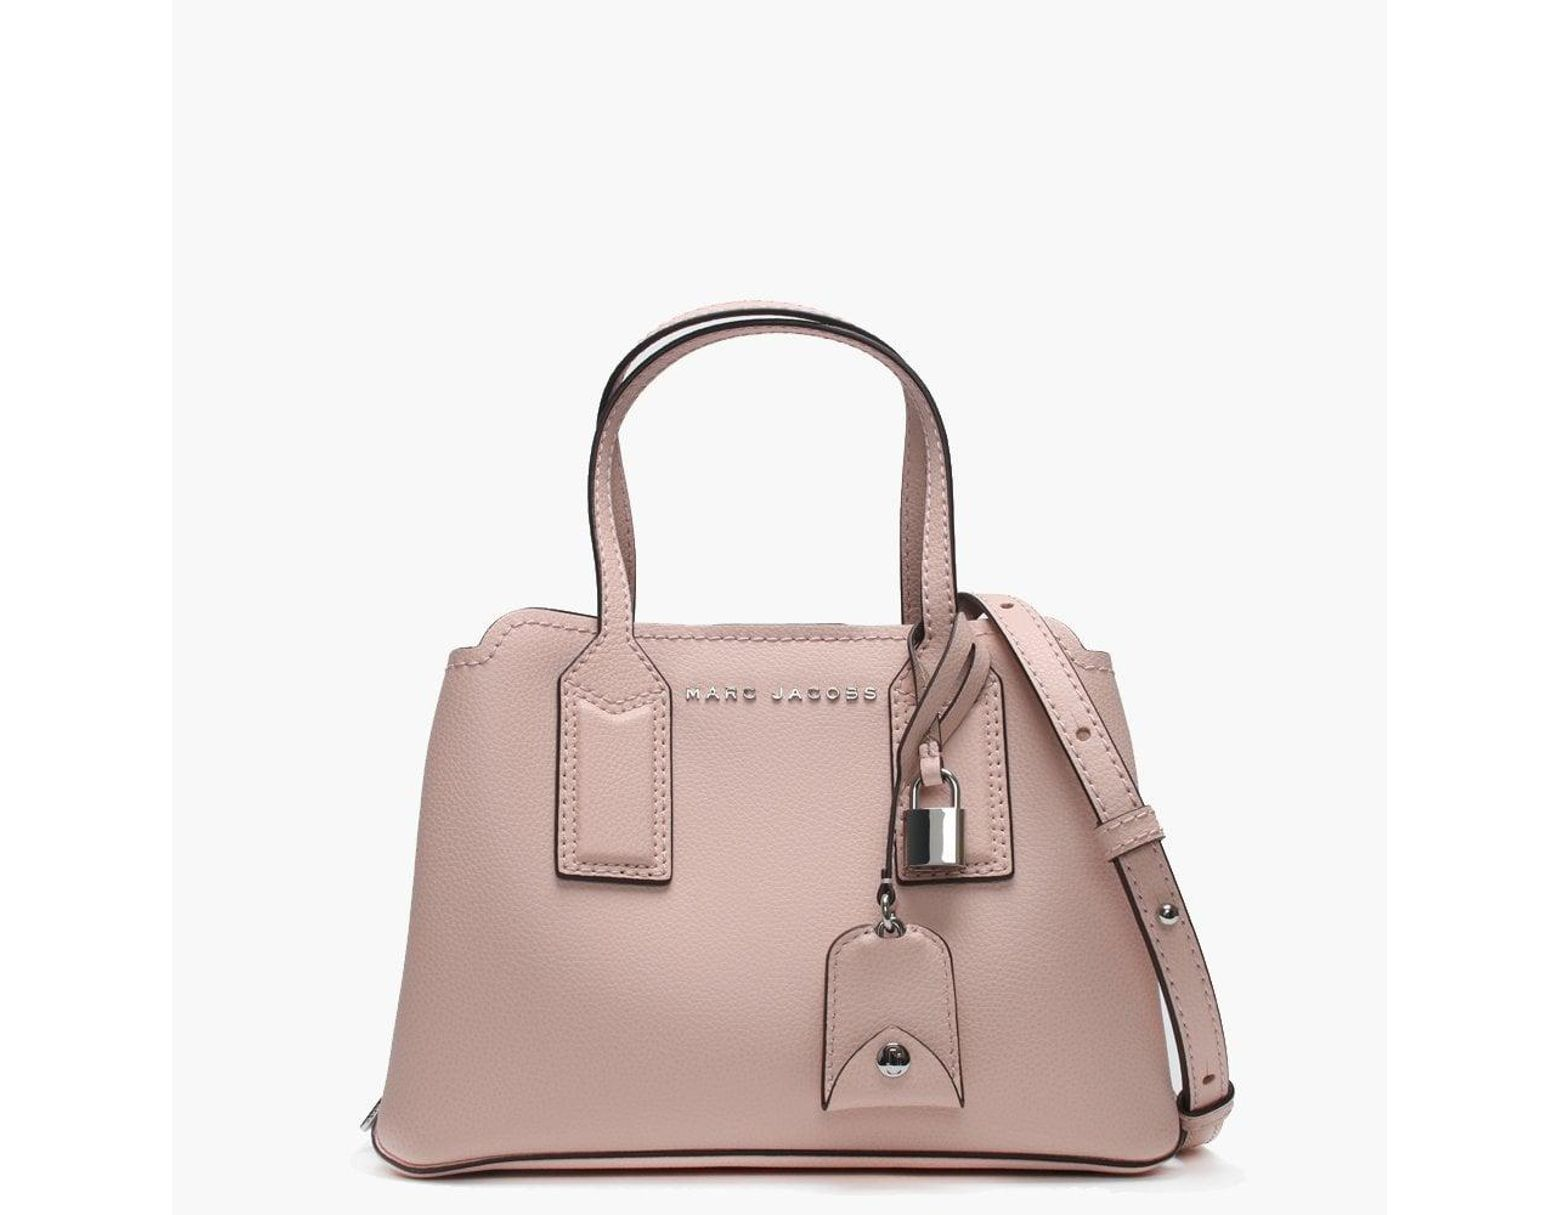 5b3e3b202e2 Marc Jacobs The Editor 29 Pearl Pink Leather Tote Bag in Pink - Lyst